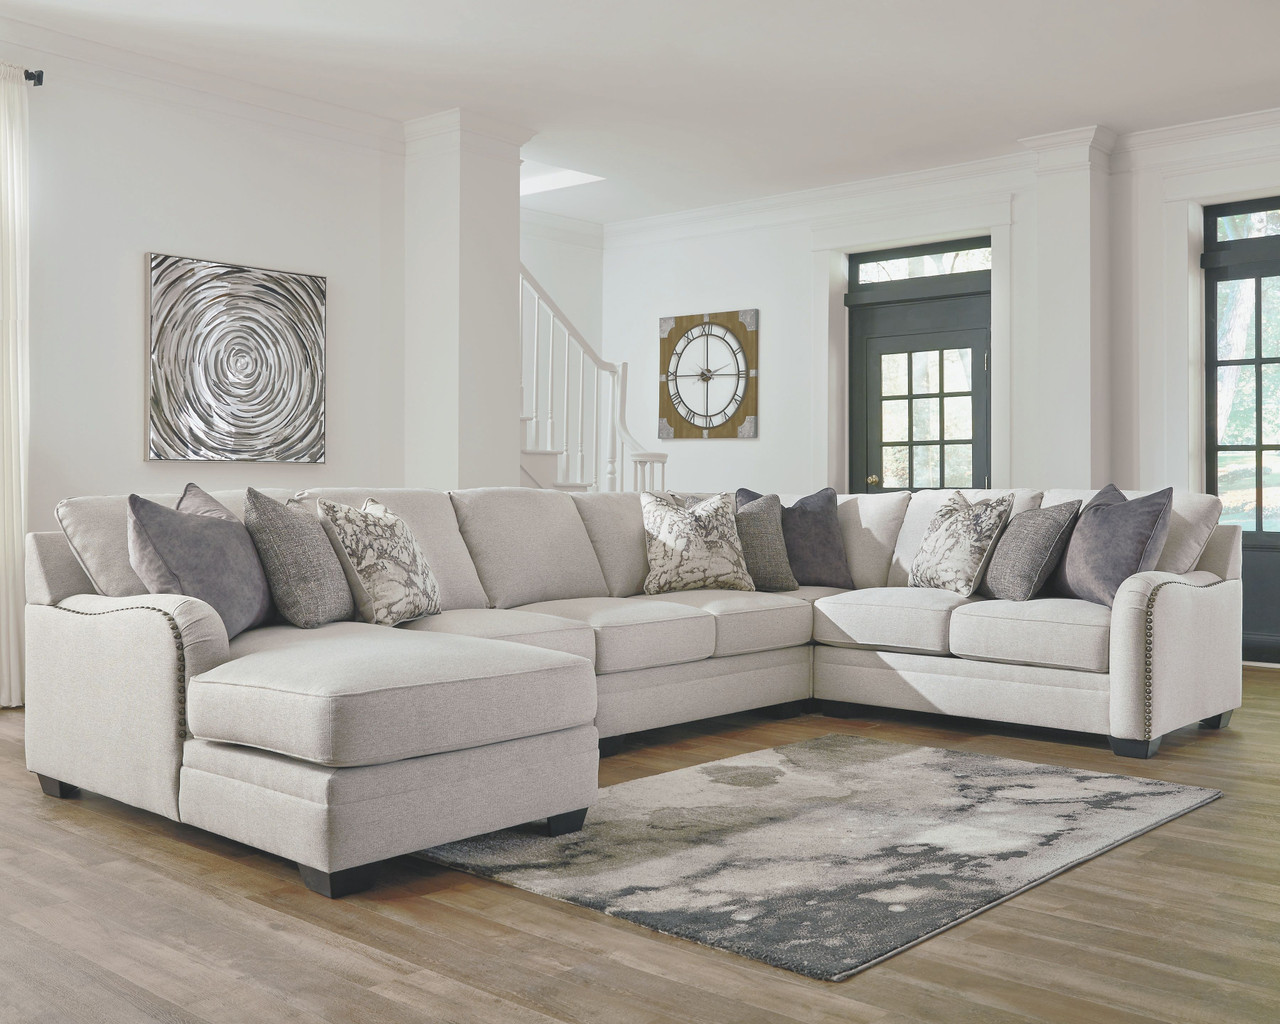 Ashley Dellara Chalk 5 Piece Sectional With Chaise On Sale At Red Shed Furniture Serving Goldsboro Wilson Greenville Nc